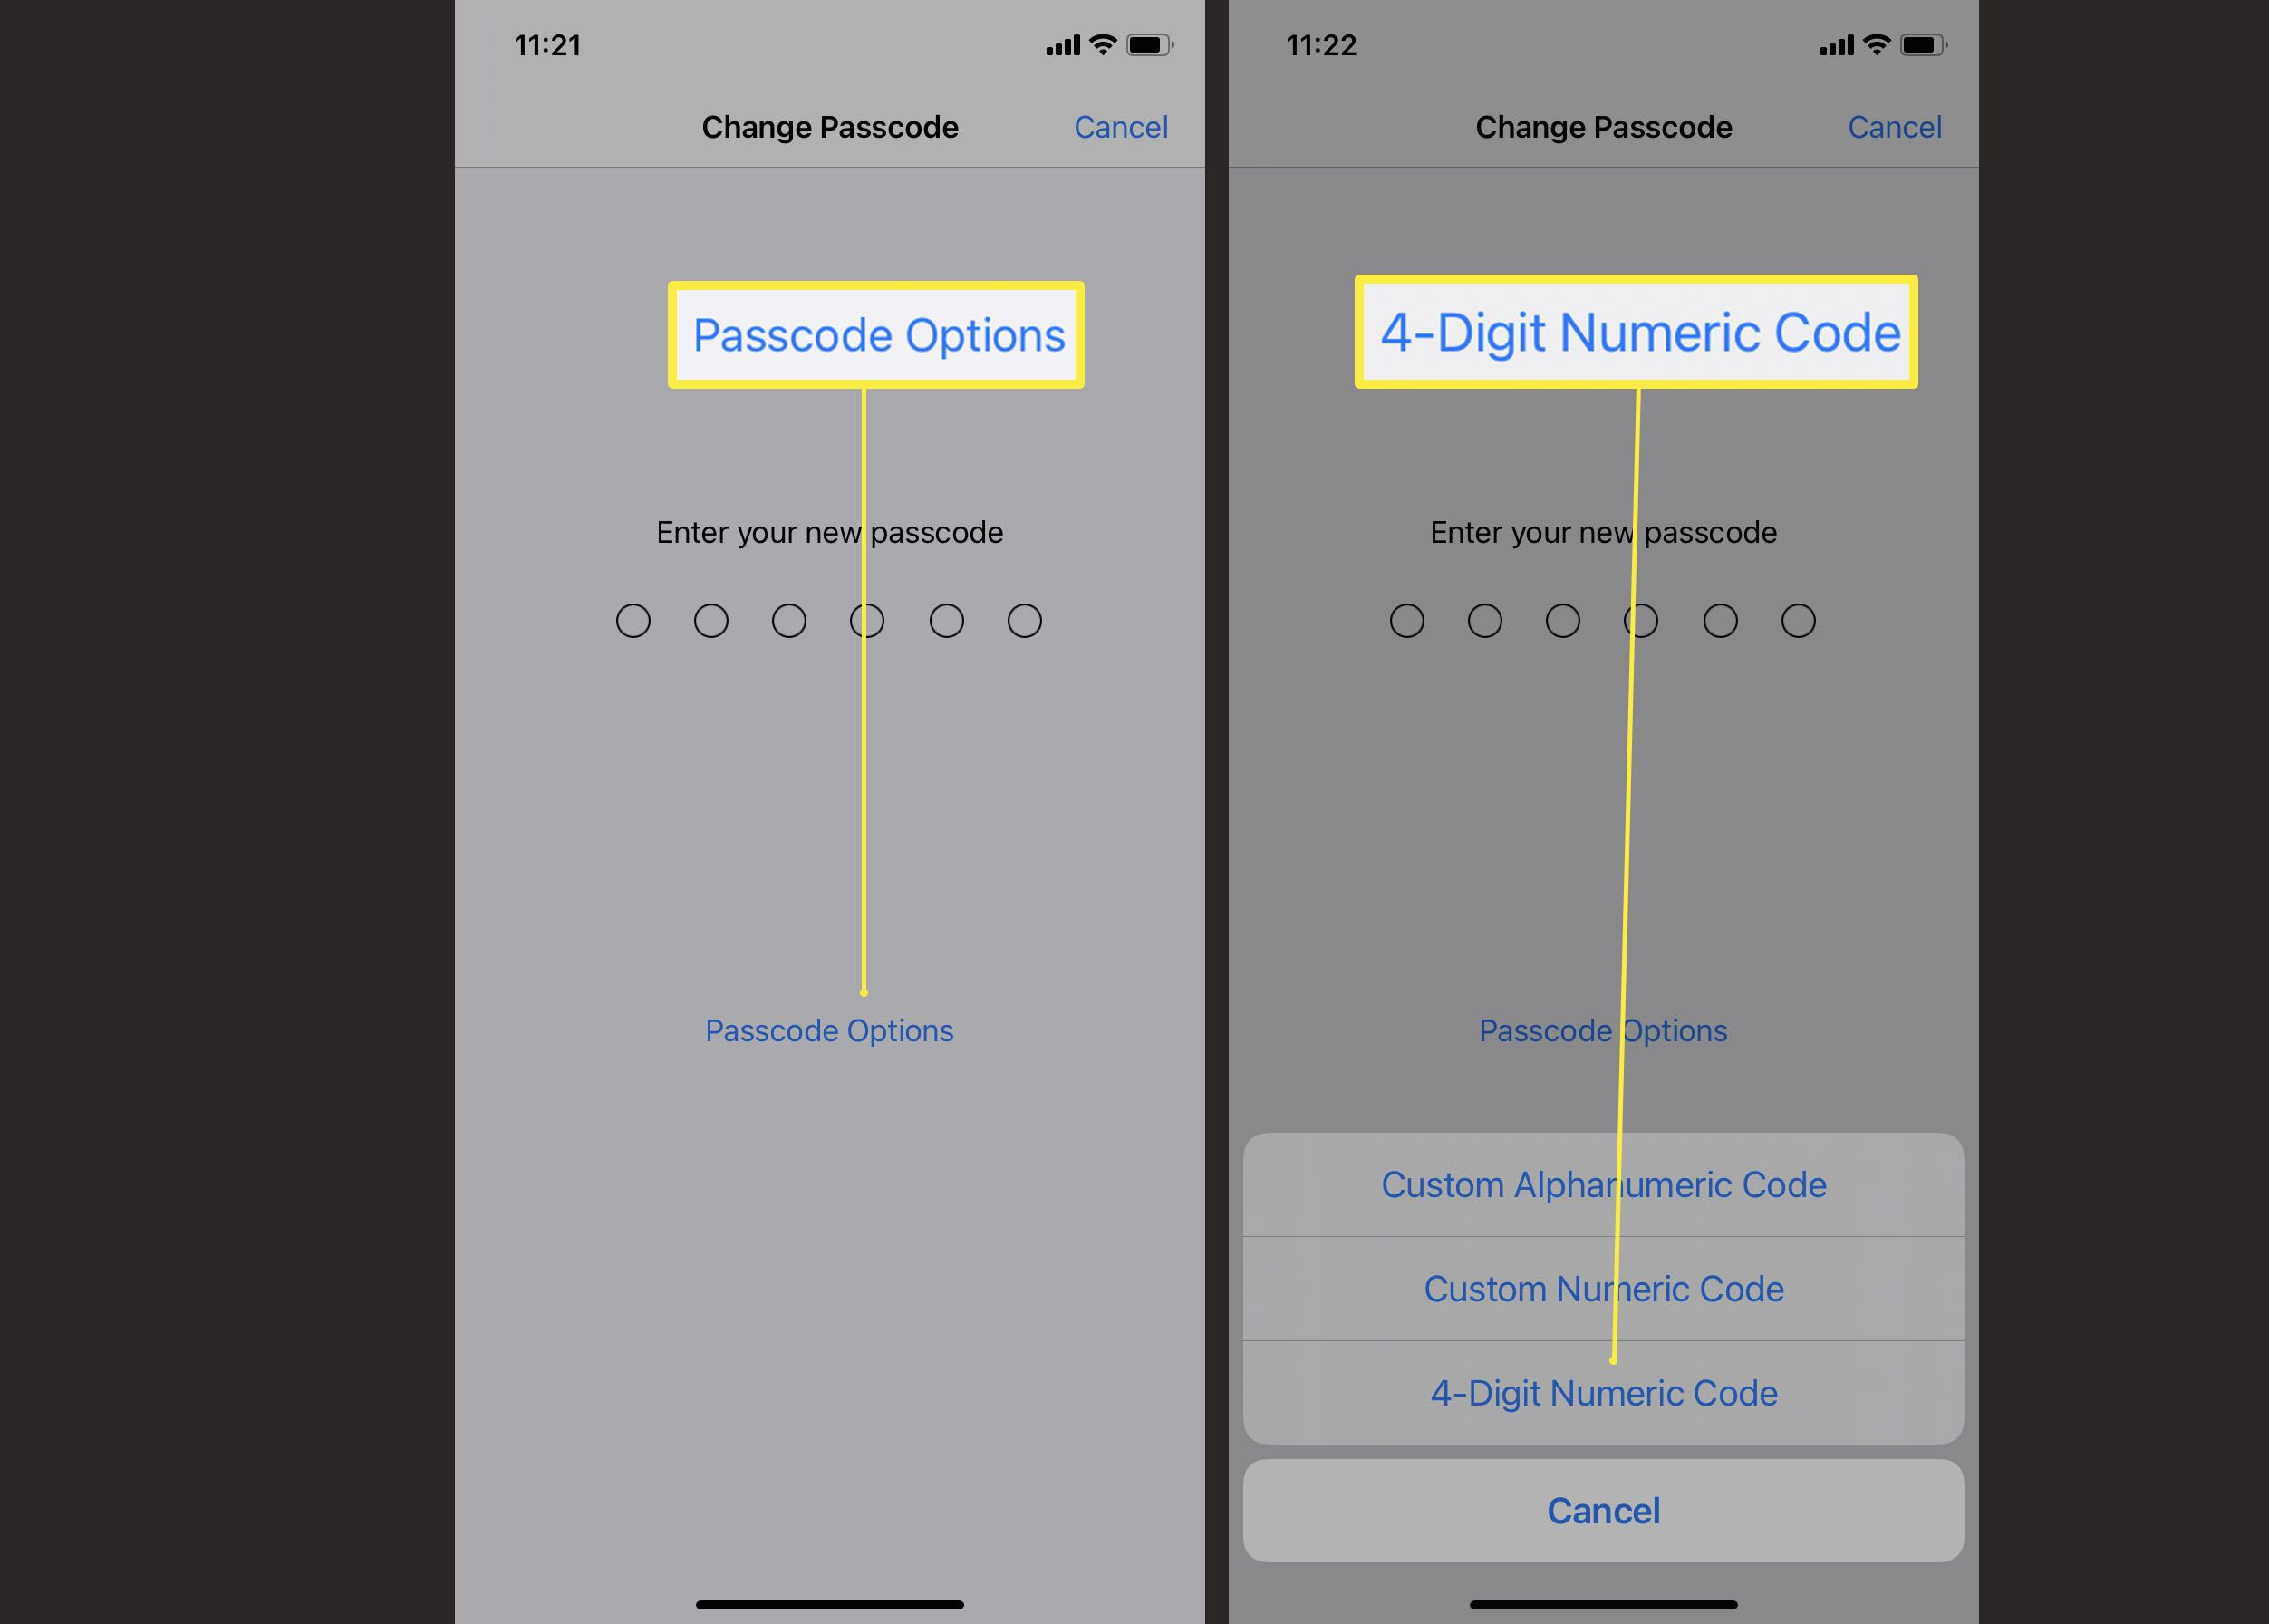 Steps required to change passcode on iPhone to a 4-digit numeric code